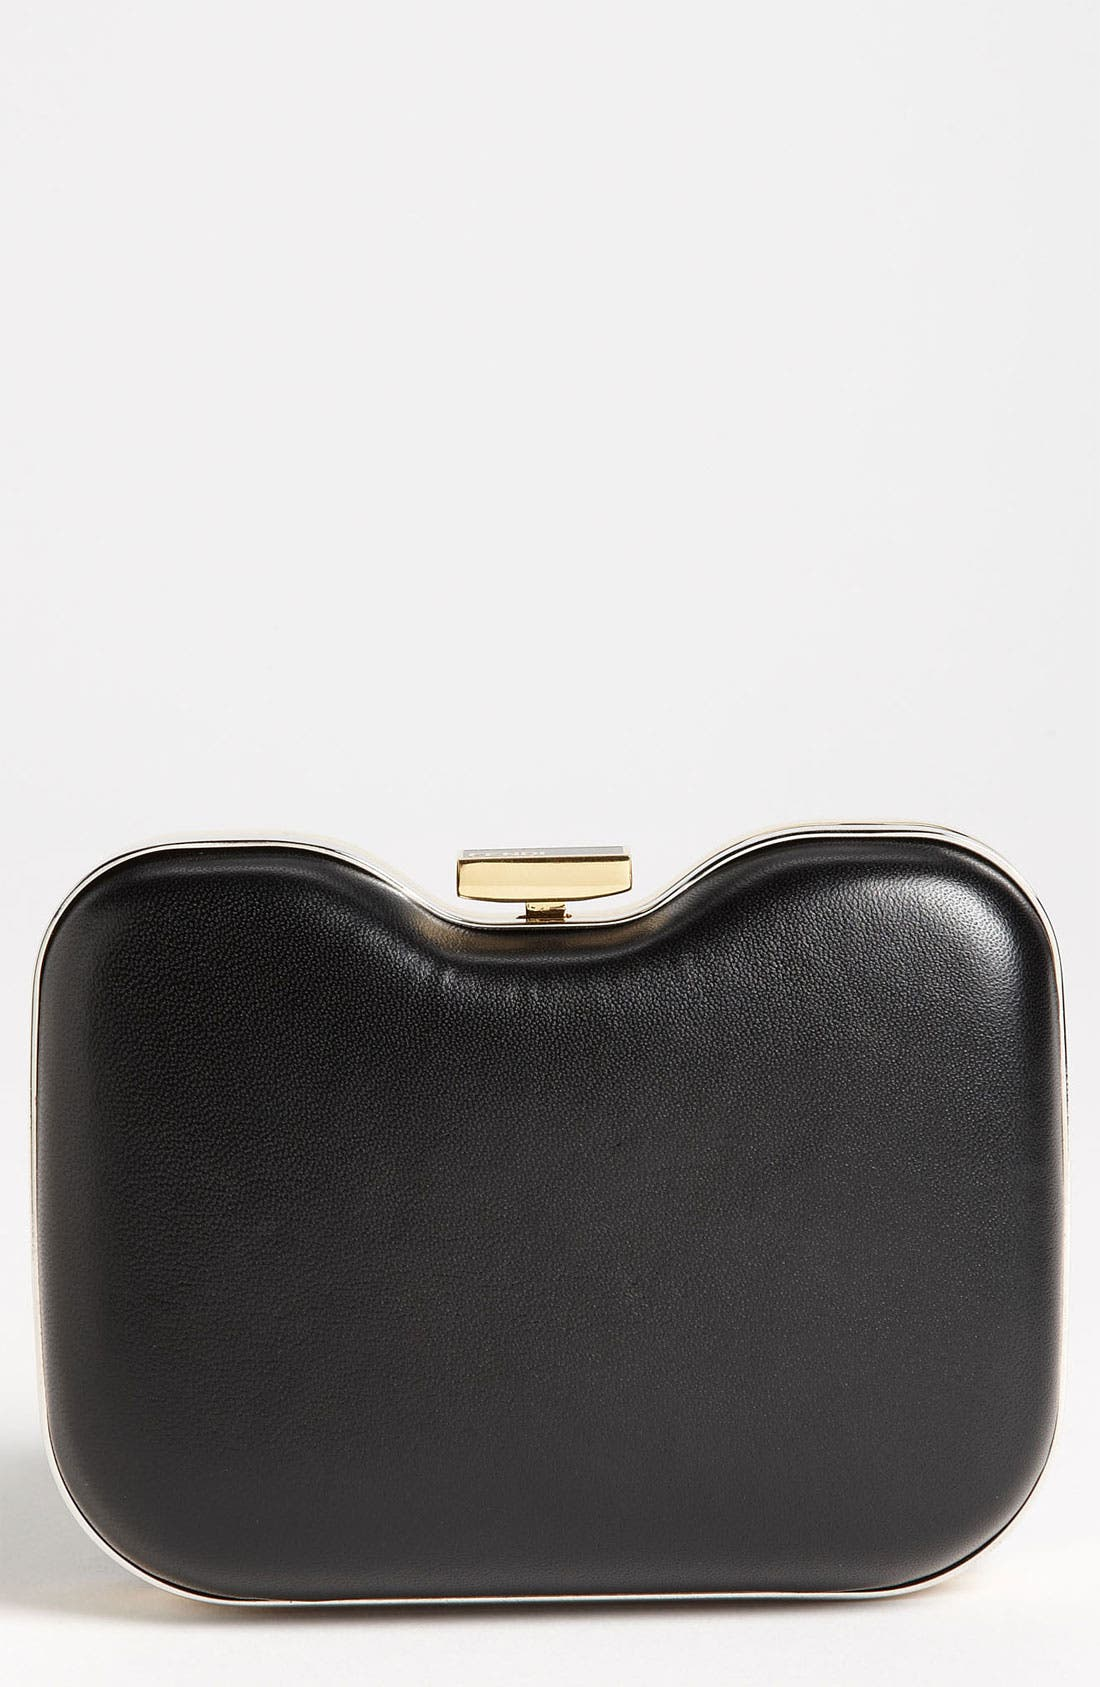 Alternate Image 1 Selected - Fendi 'Giano' Leather Clutch